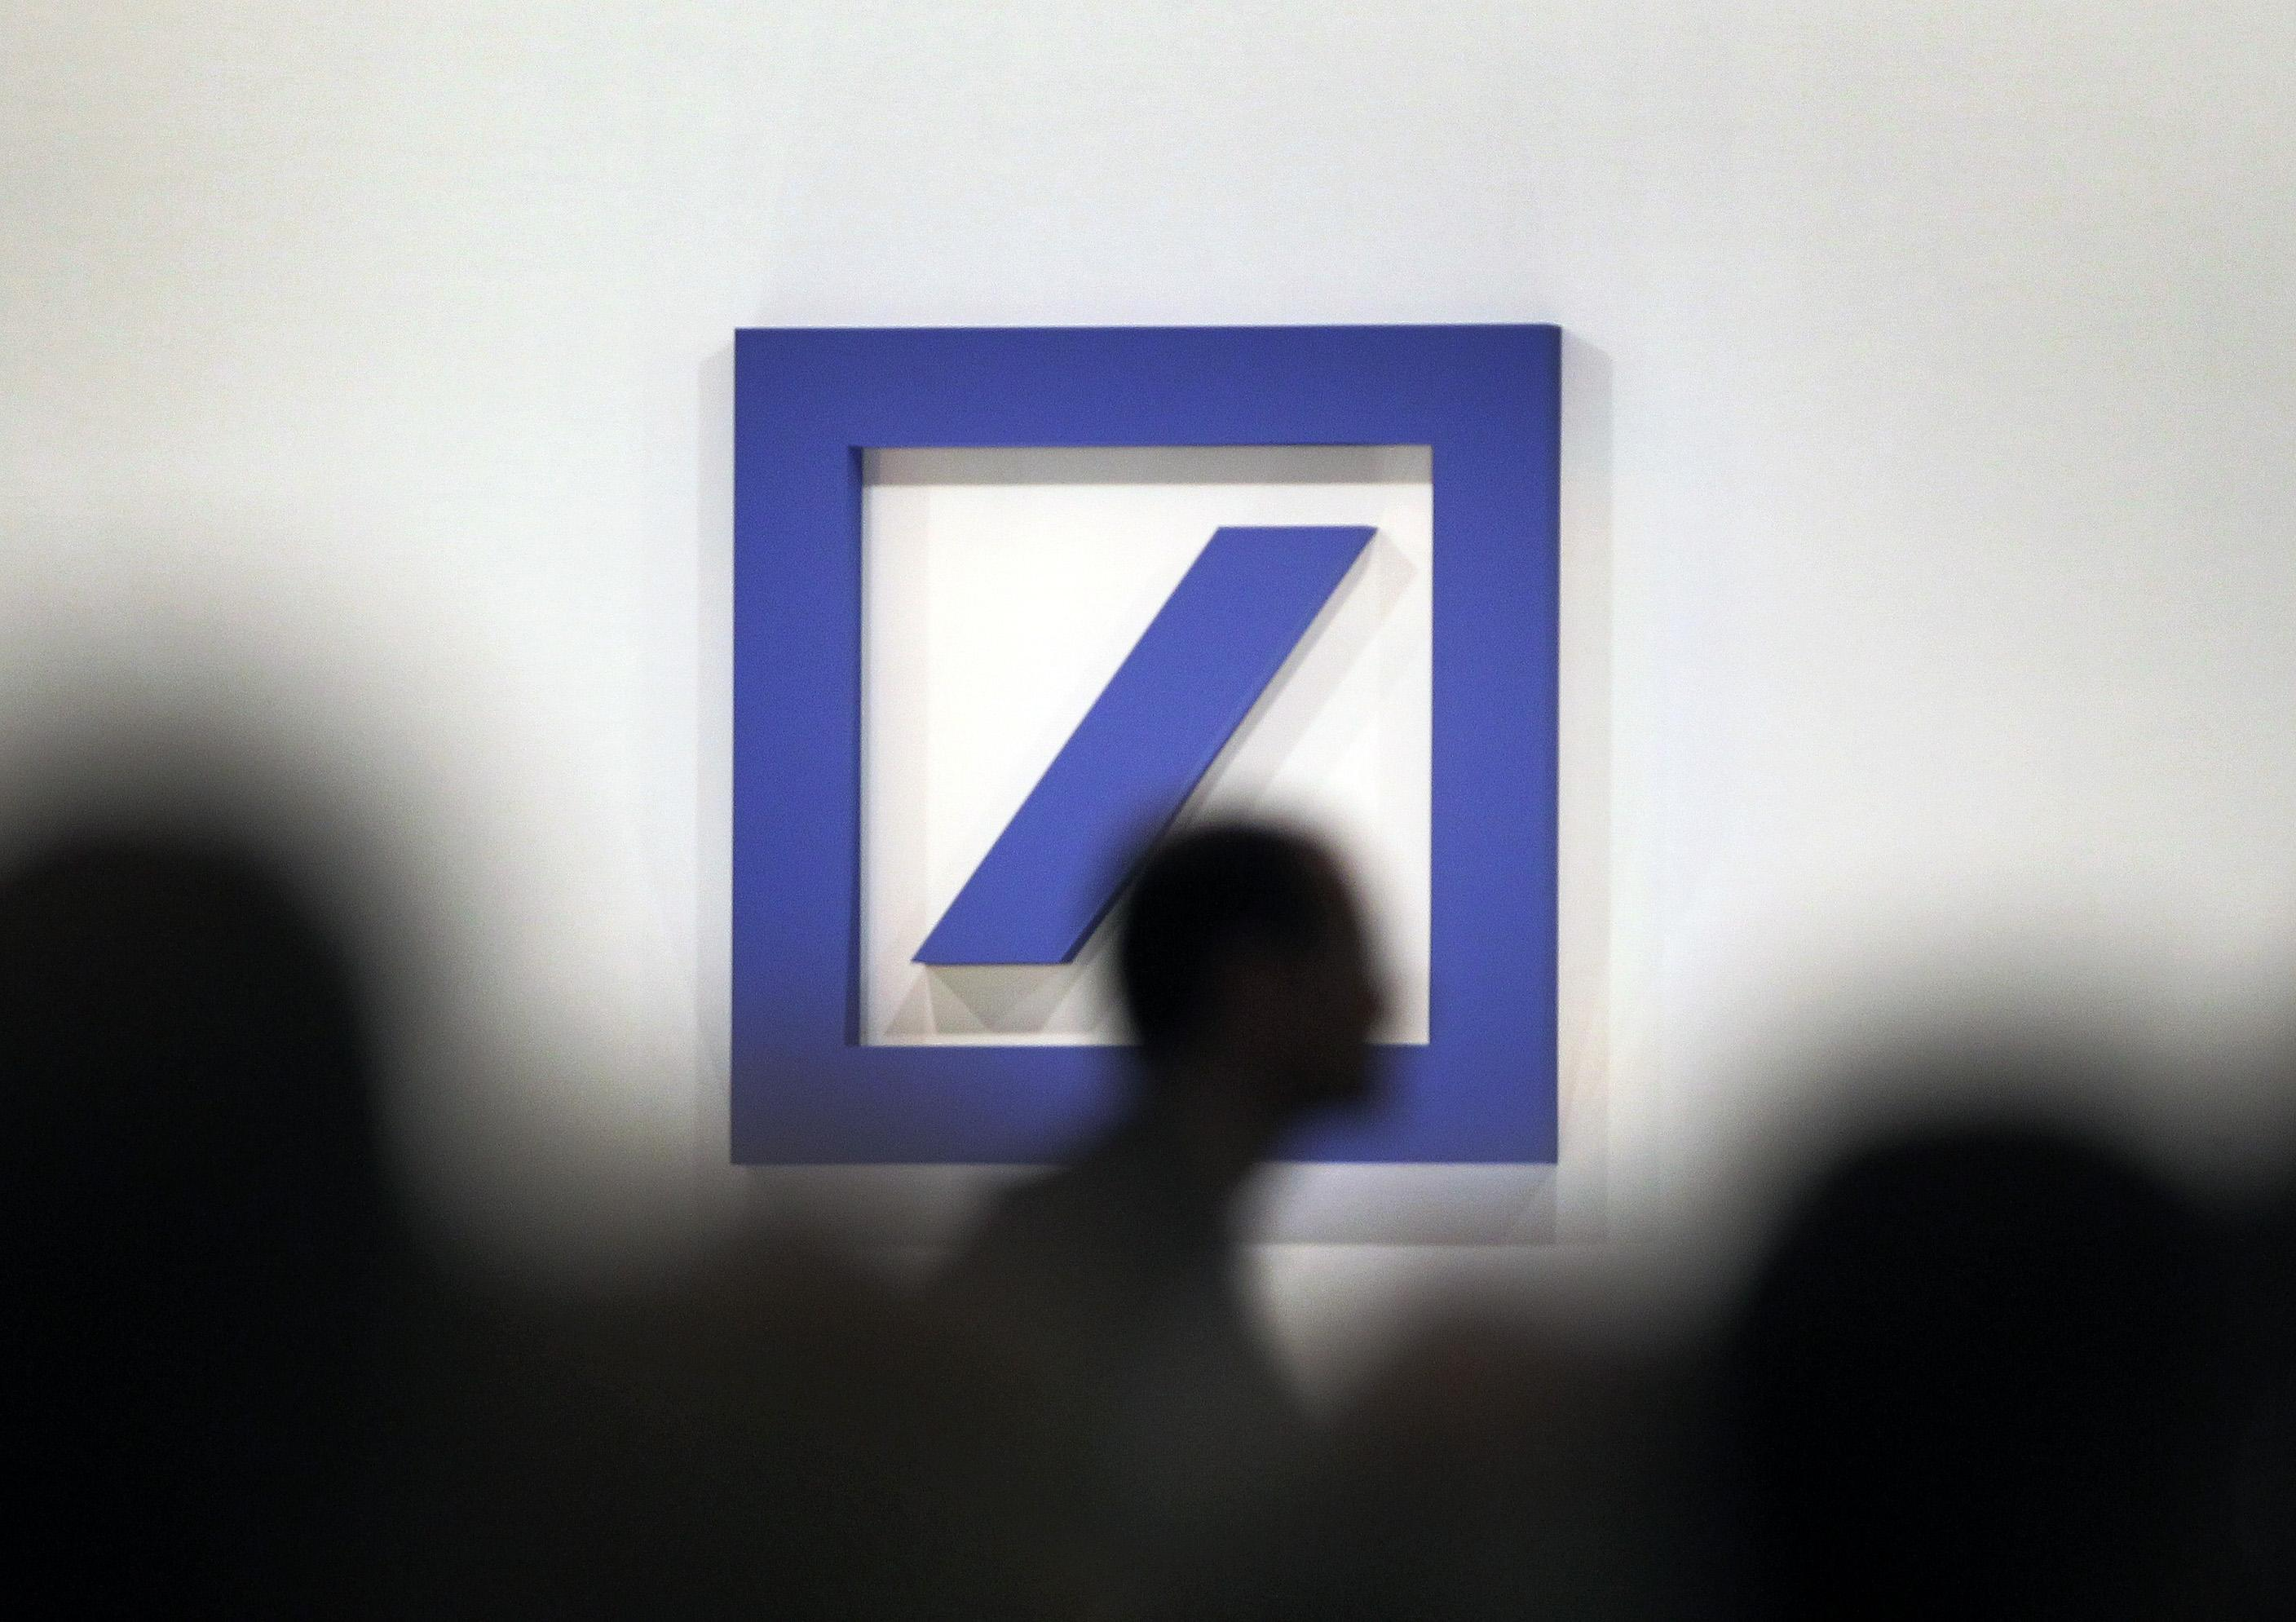 Deutsche Bank Fed stress test